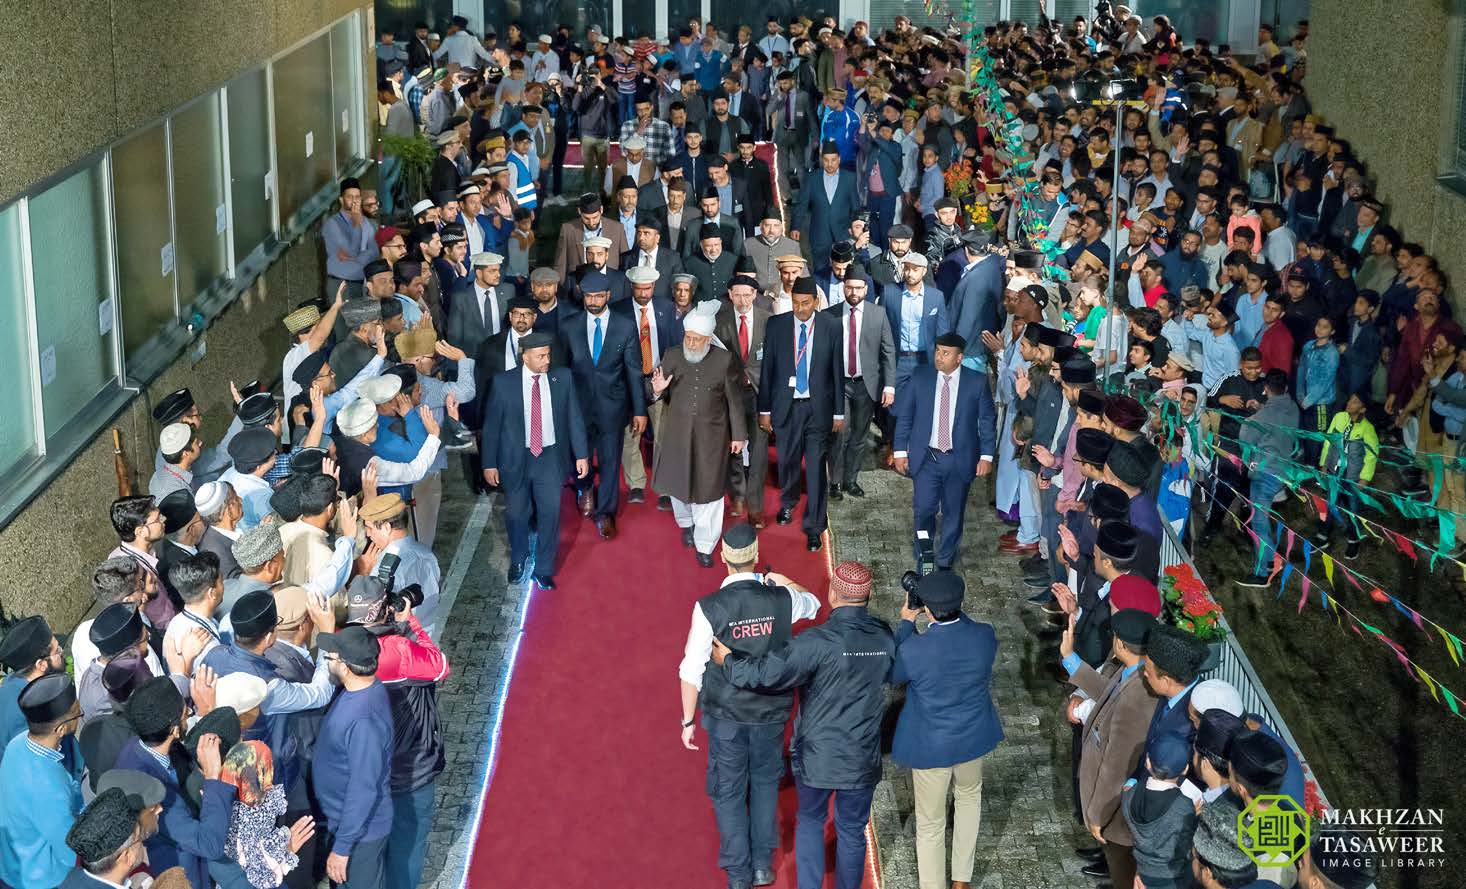 Head of Ahmadiyya Muslim Community arrives in Germany